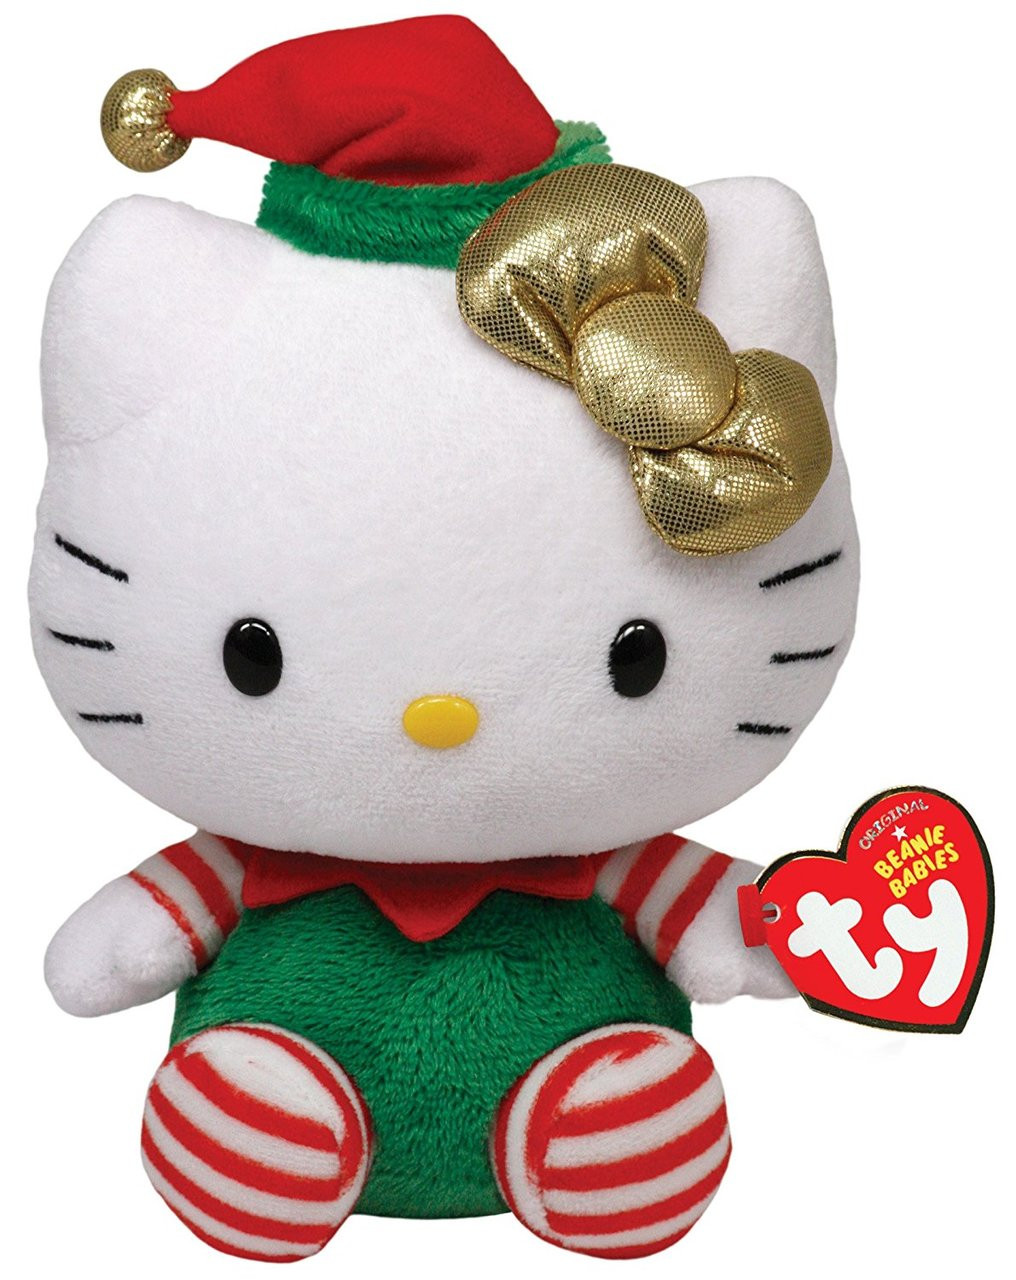 "Hello Kitty Small TY Beanie Baby 6.5"" Plush Toy - Elf Kitty"